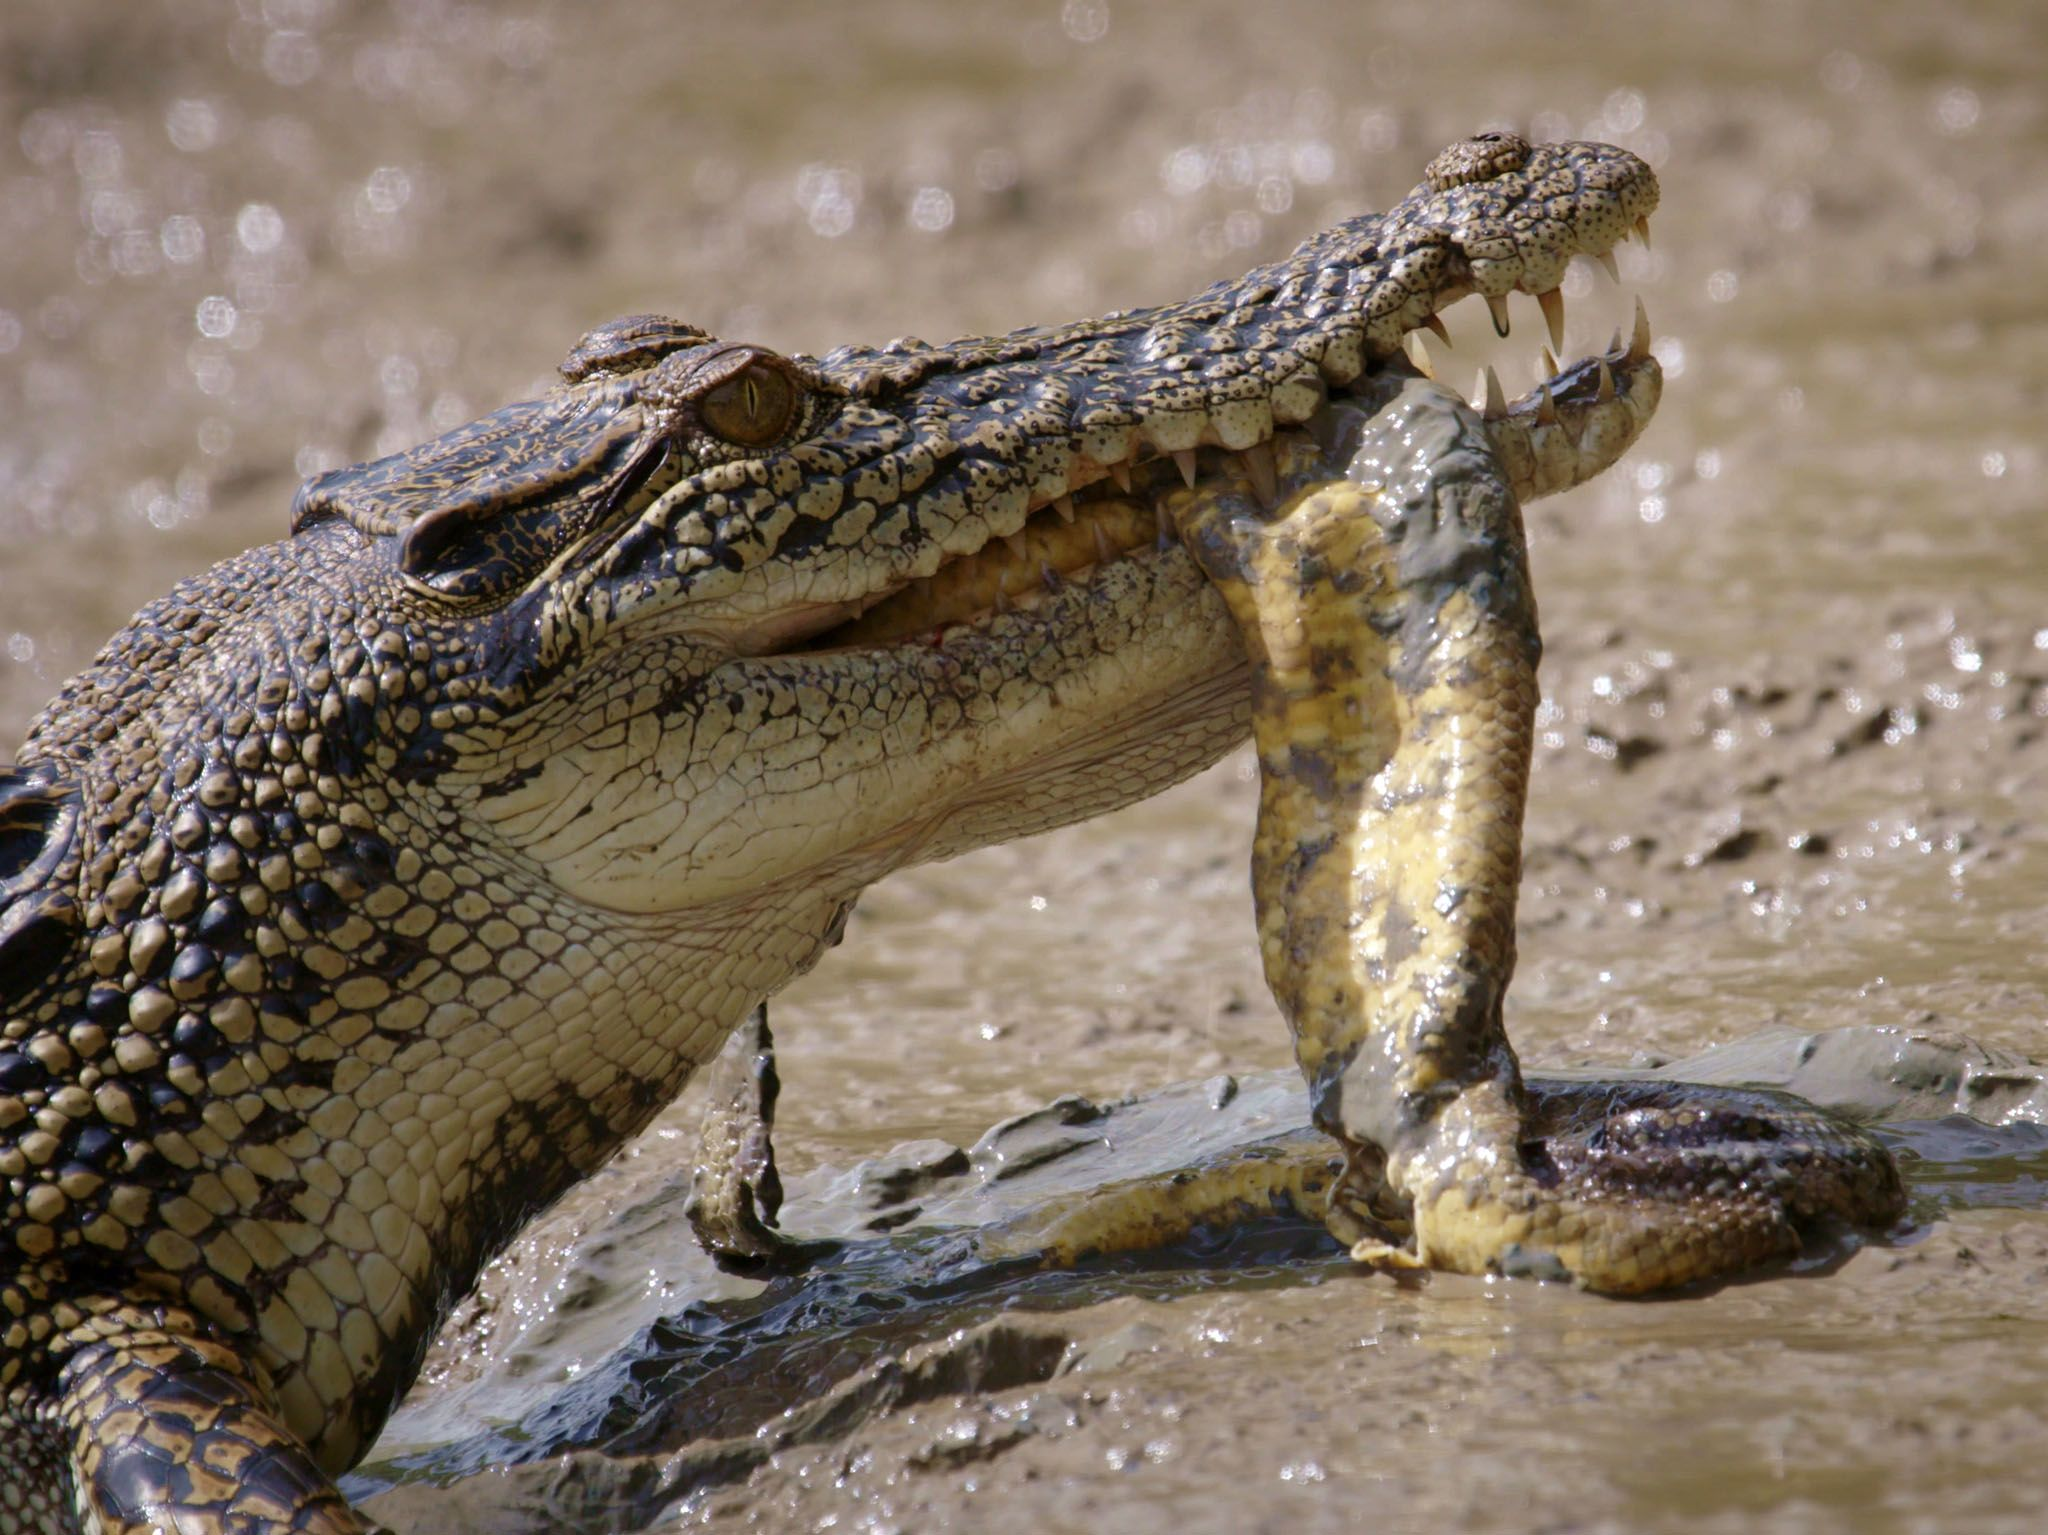 Saltwater Crocodile with dead snake in mouth. This image is from Boss Croc. [Photo of the day - 六月 2017]